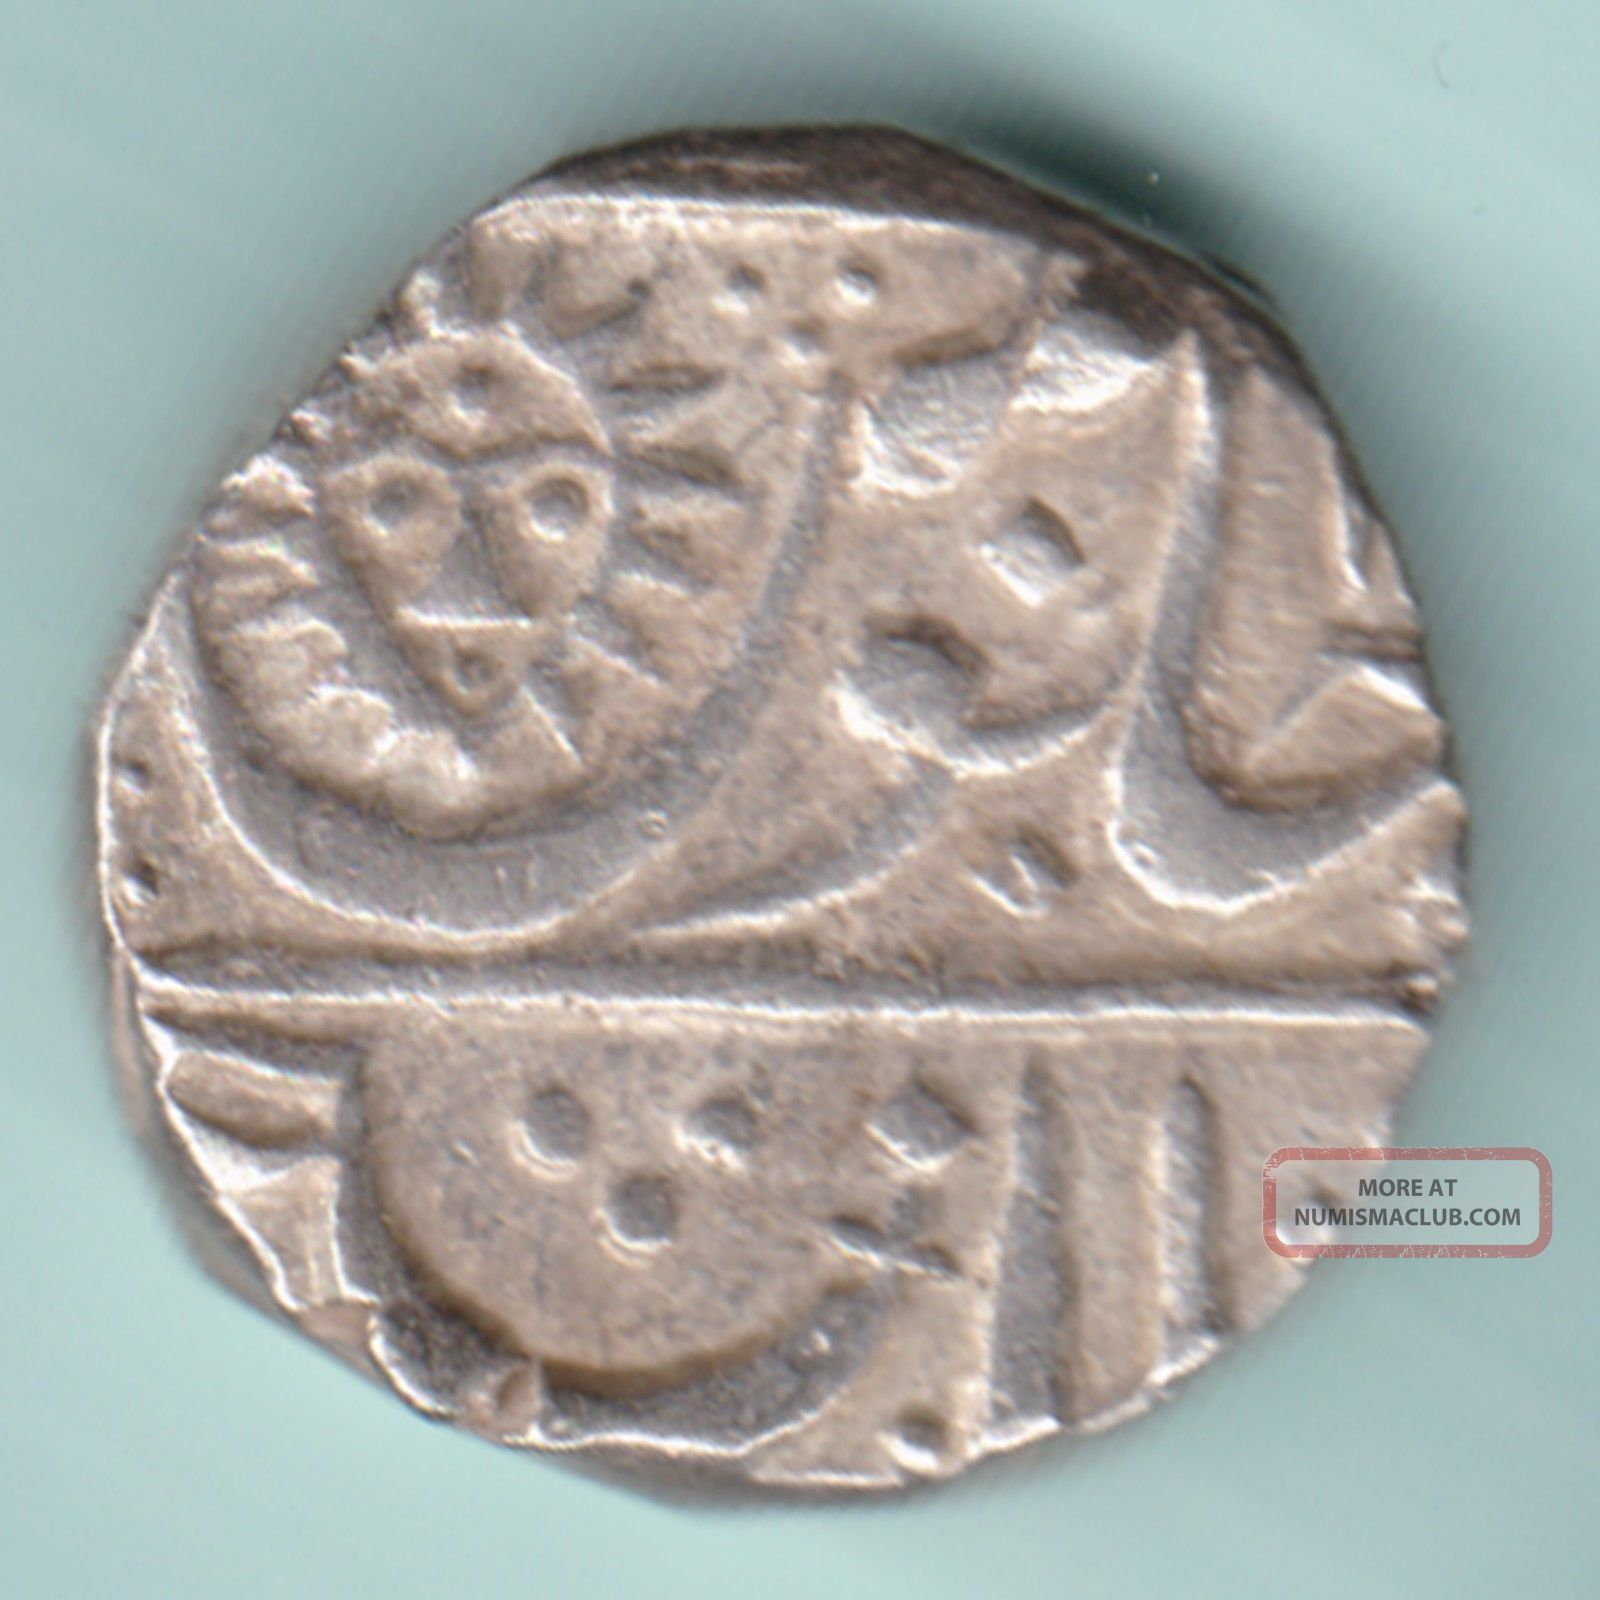 Indore State - Shahalam Ii - Shivaji Holkar - One Rupee - Rarest Silver Coin India photo